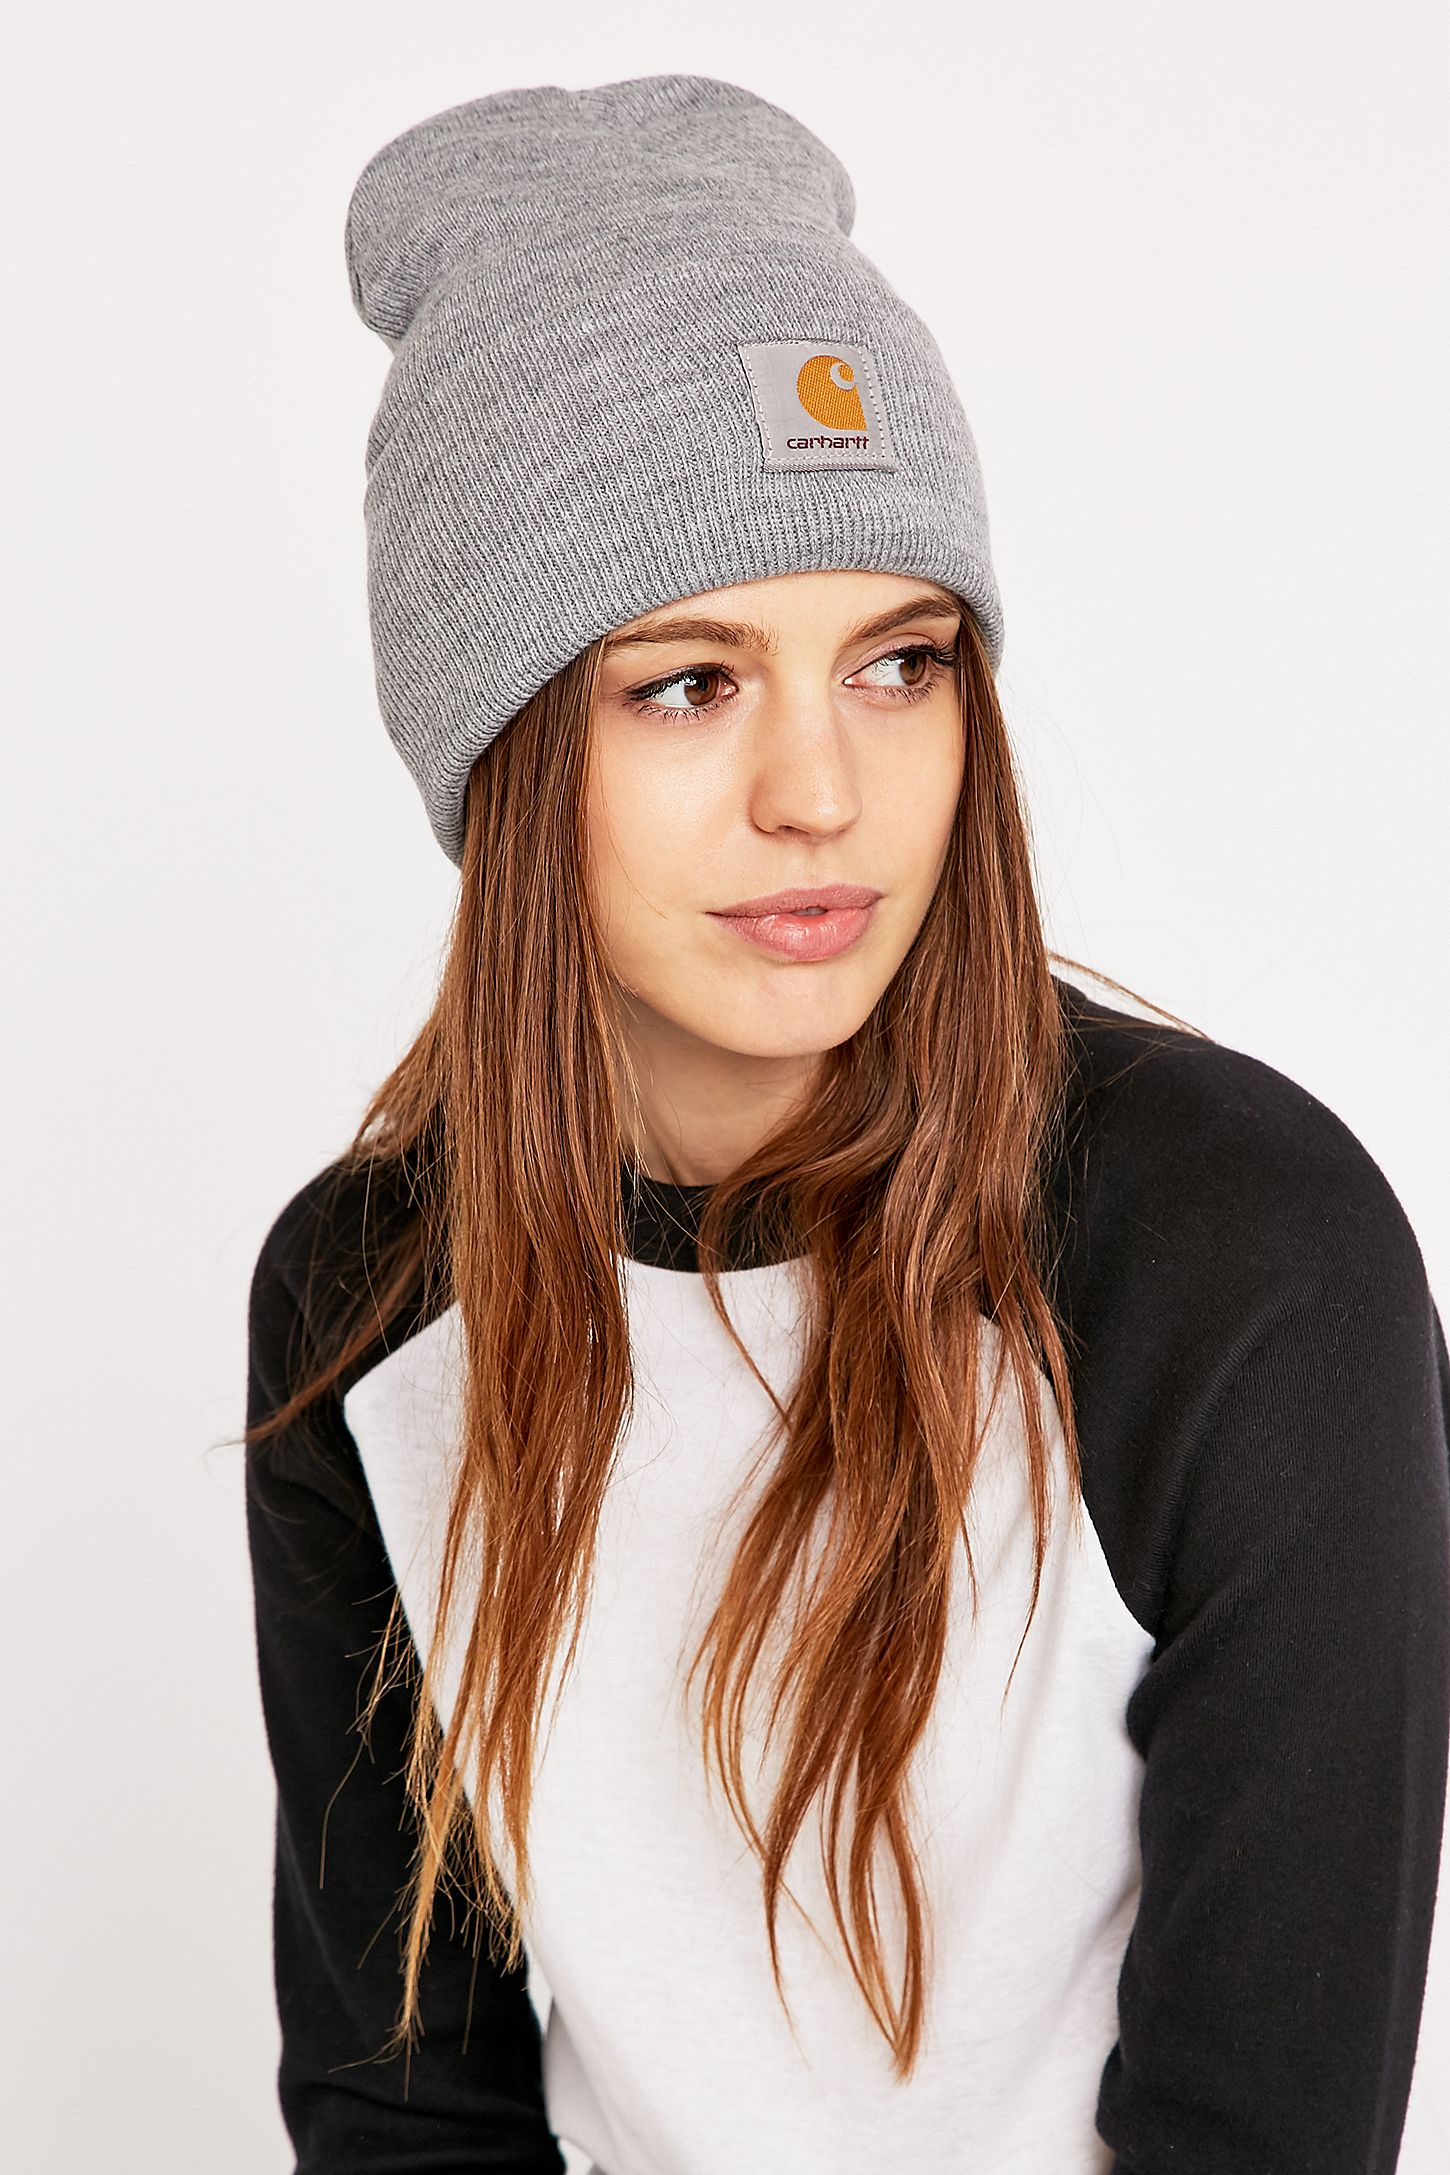 c05635fdd5e Carhartt Heather Grey Watch Beanie. Click on image to zoom. Hover to zoom.  Double Tap to Zoom